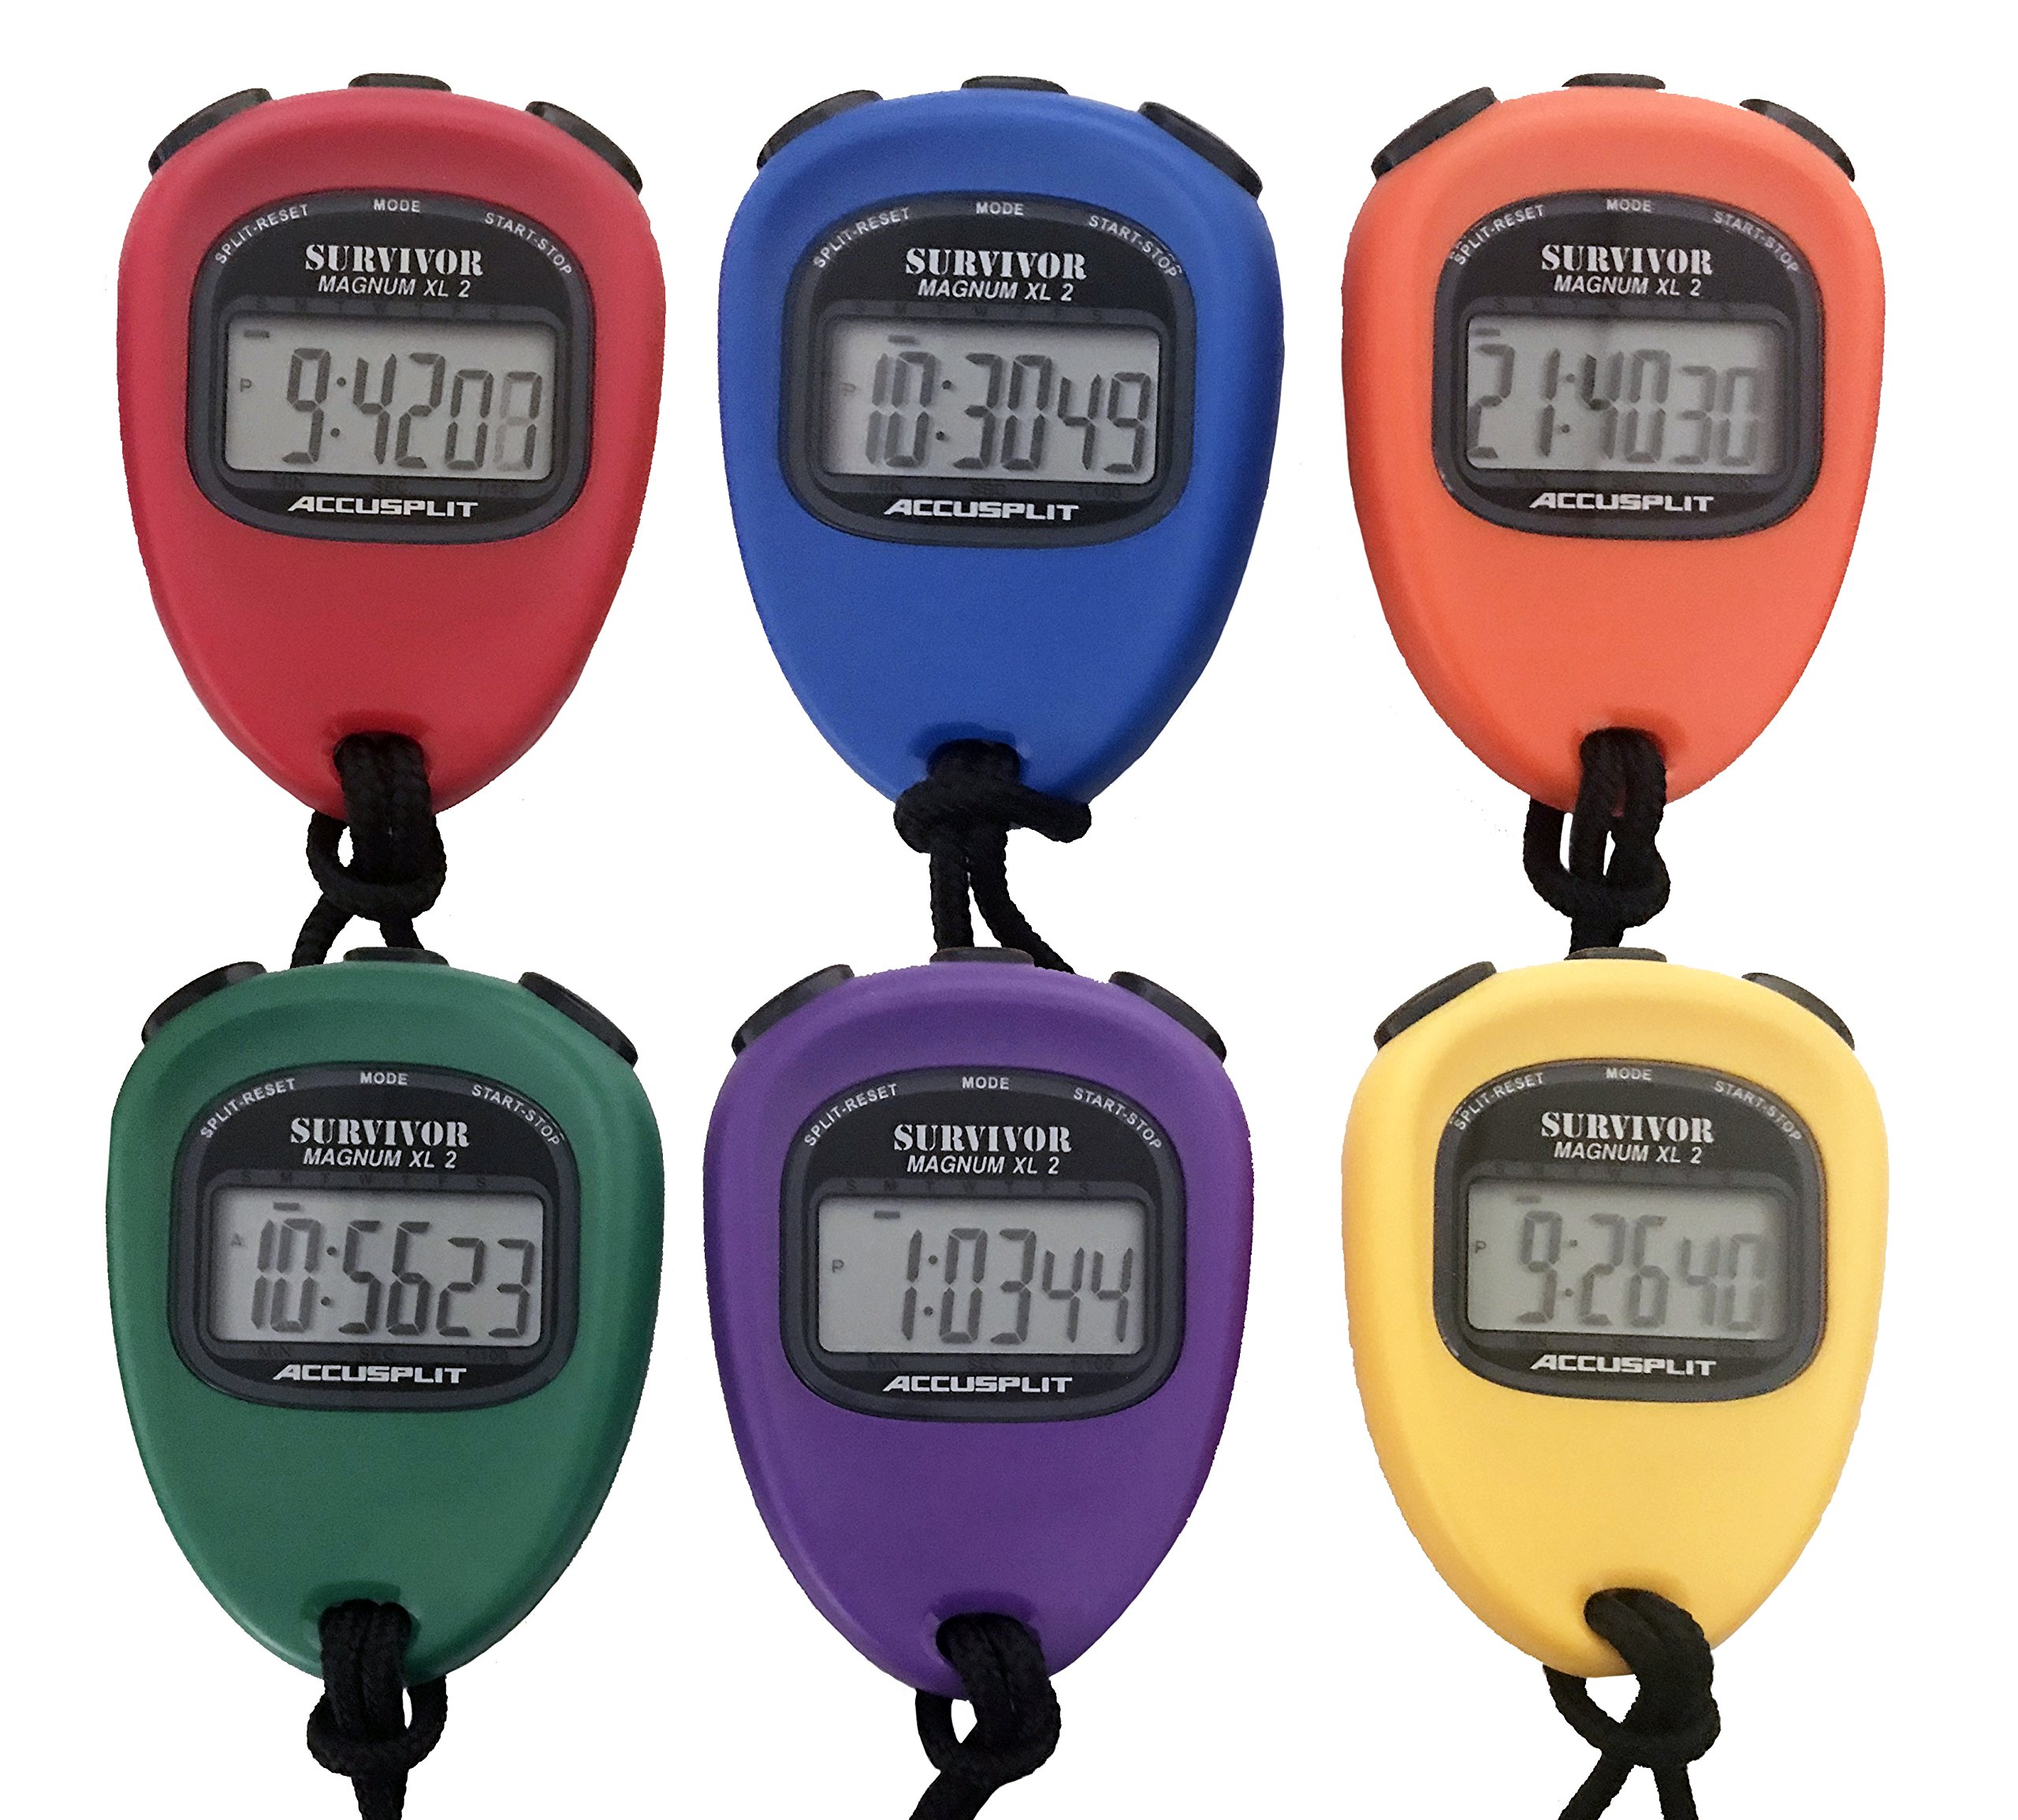 ACCUSPLIT New Survivor SX 2 Series Stopwatches (6 Pack of Assorted Colors)